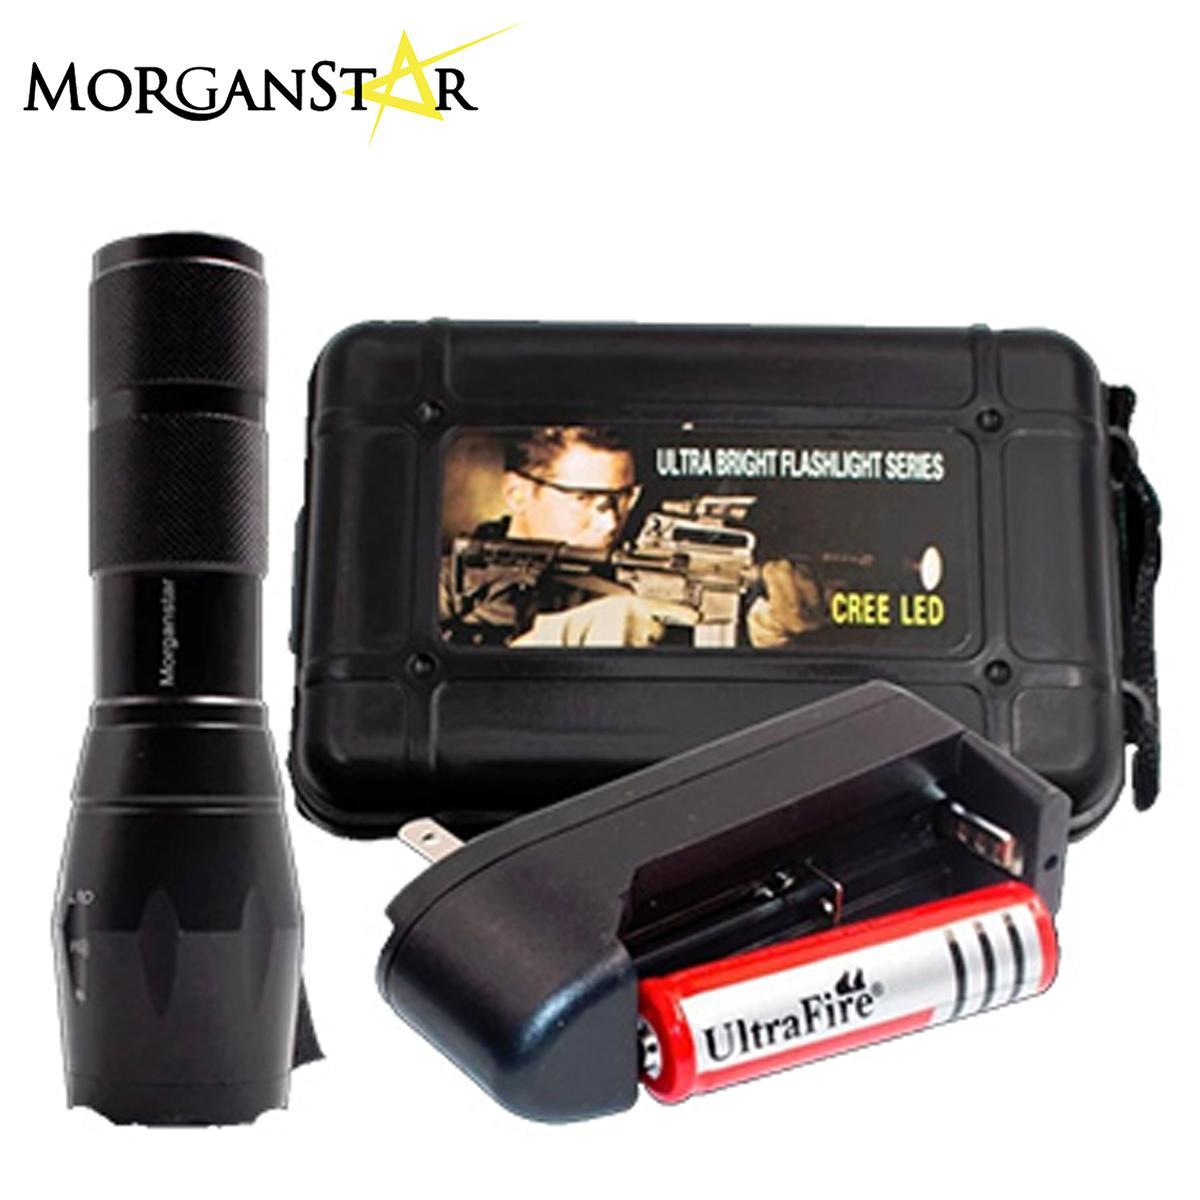 Morganstar Ultra Bright Cree Xml T6 Led 5 Mode Bright Zoom Flashlight Splashproof Torch By Morganstar Marketing.